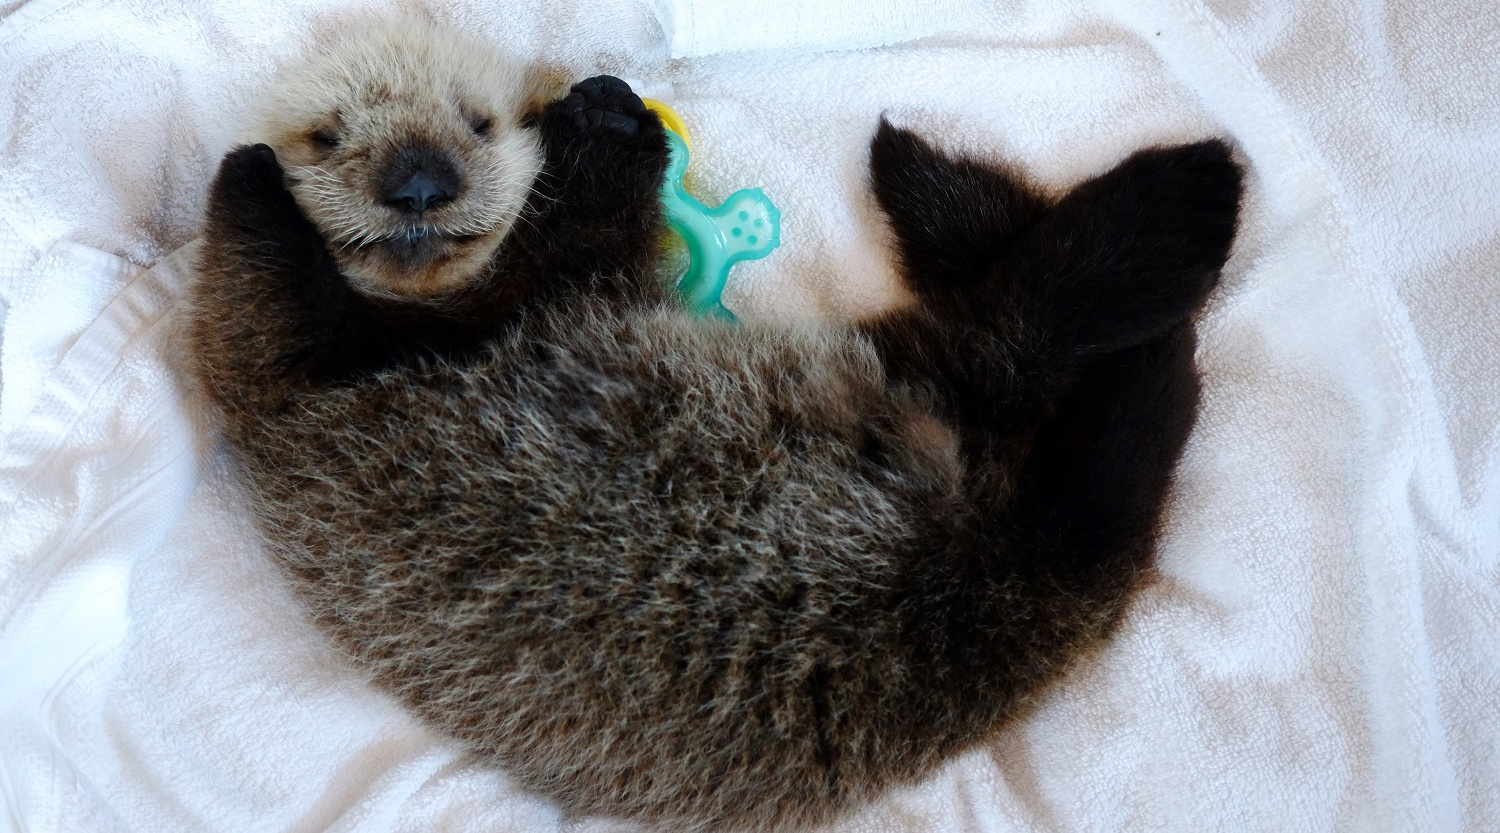 The sea otter pup rescued near Vancouver Island (Vancouver Aquarium)